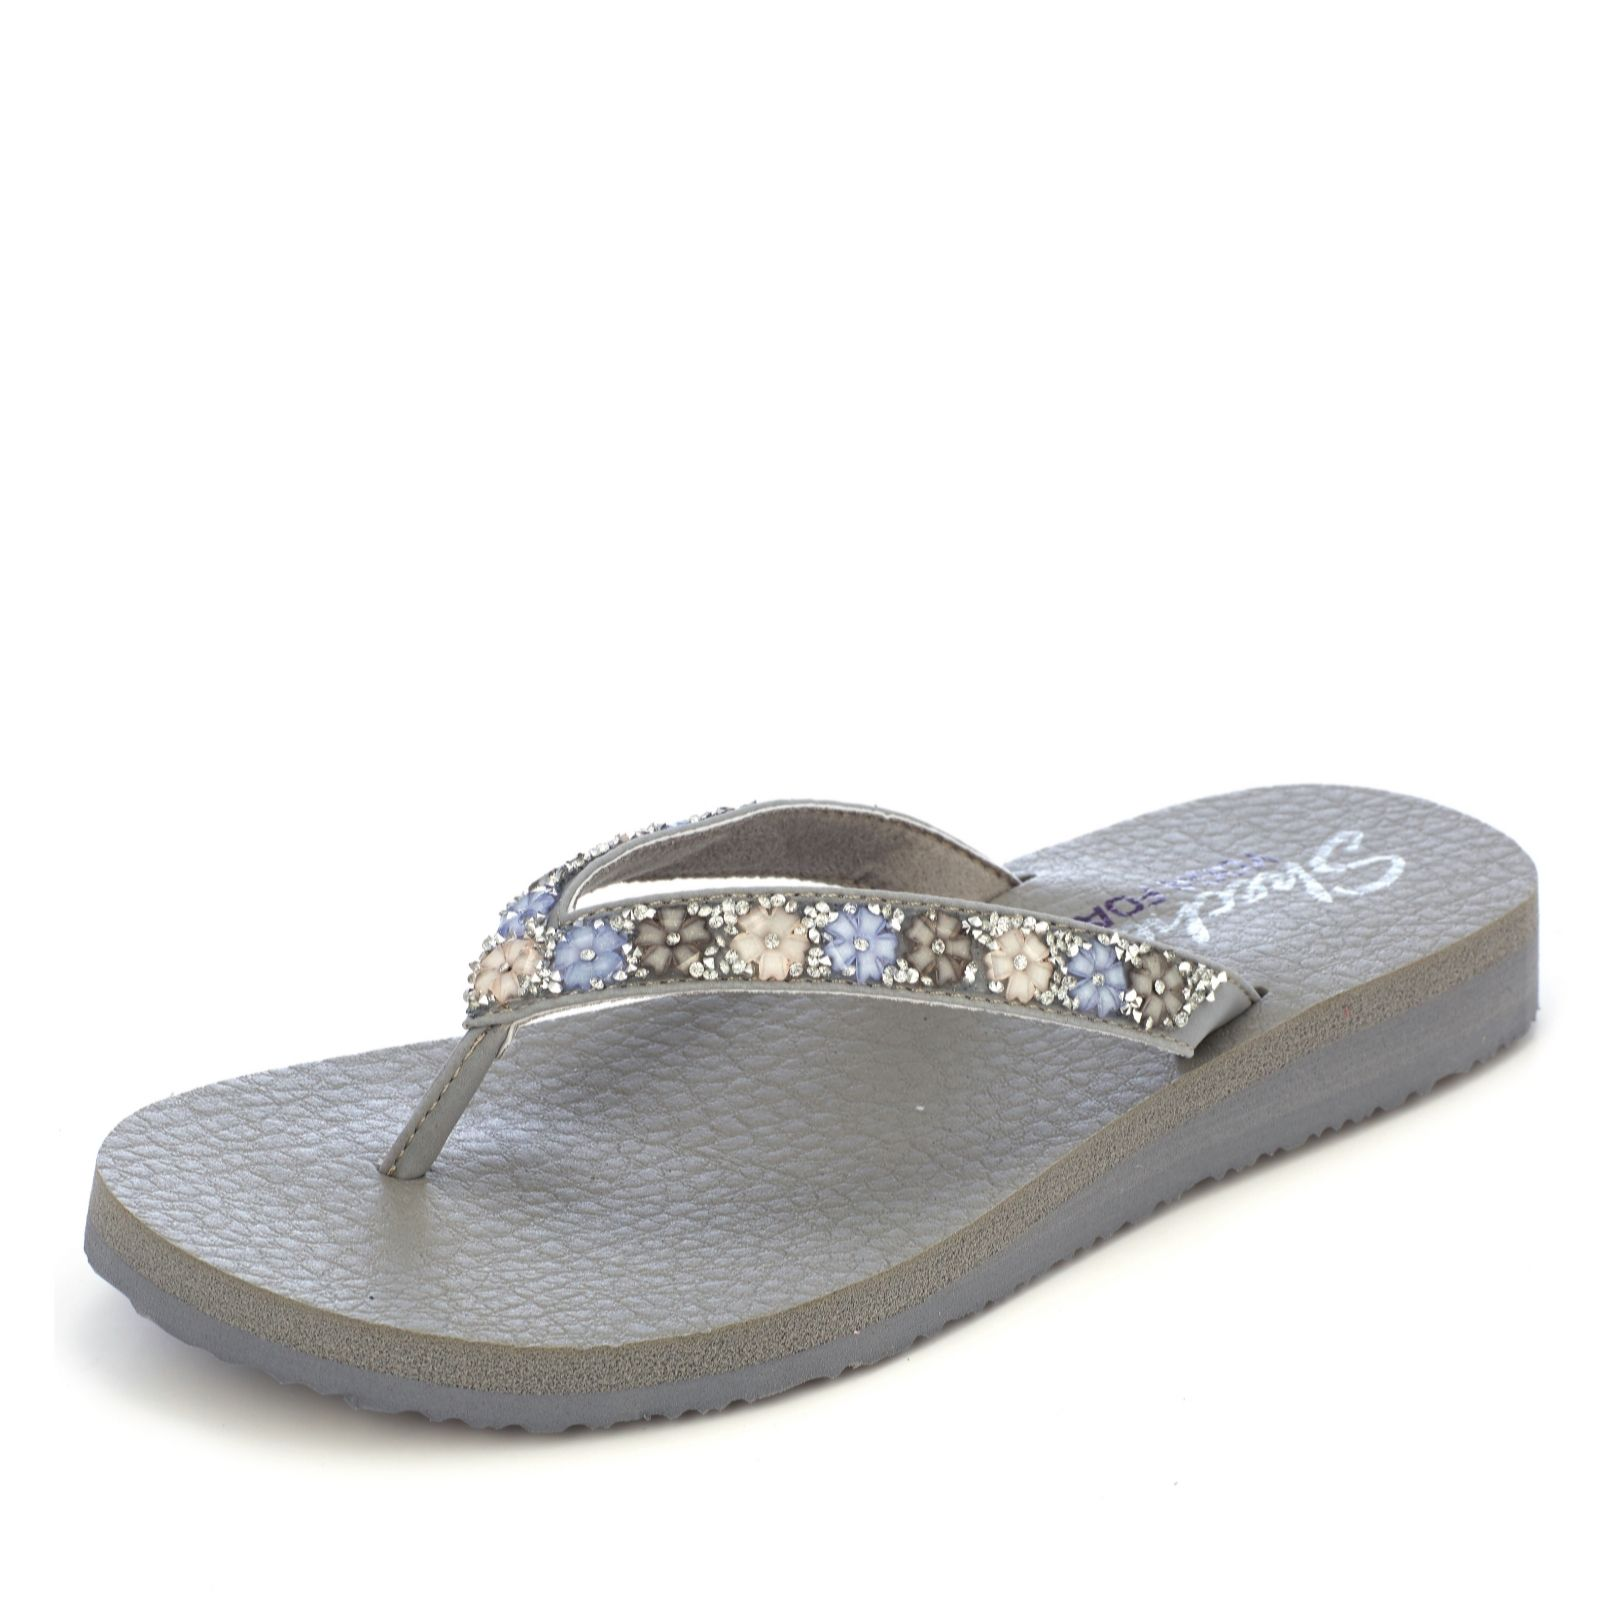 c7c86c18ba17 Skechers Meditation Daisy Delight Flower   Rhinestone Sandal with Yoga Foam  - QVC UK